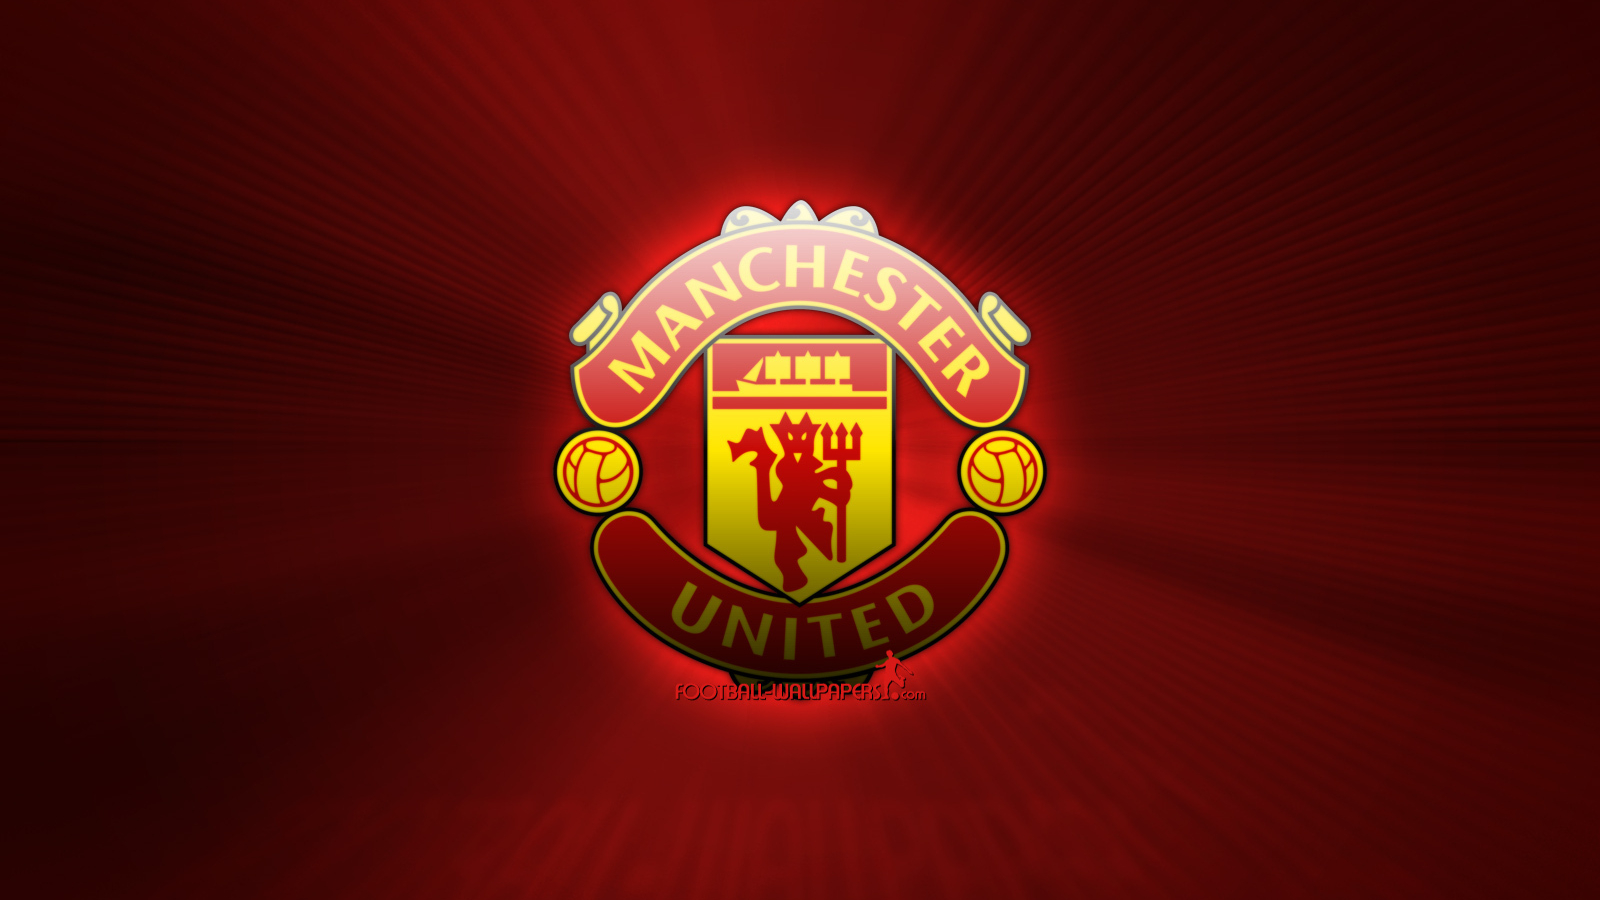 Free Download 10 Manchester United Wallpaper Quotes Wallpapers 1600x1200 For Your Desktop Mobile Tablet Explore 76 Manchester United Logo Wallpaper Man Utd Wallpaper 2015 Man United Wallpaper Manchester United Wallpaper Hd